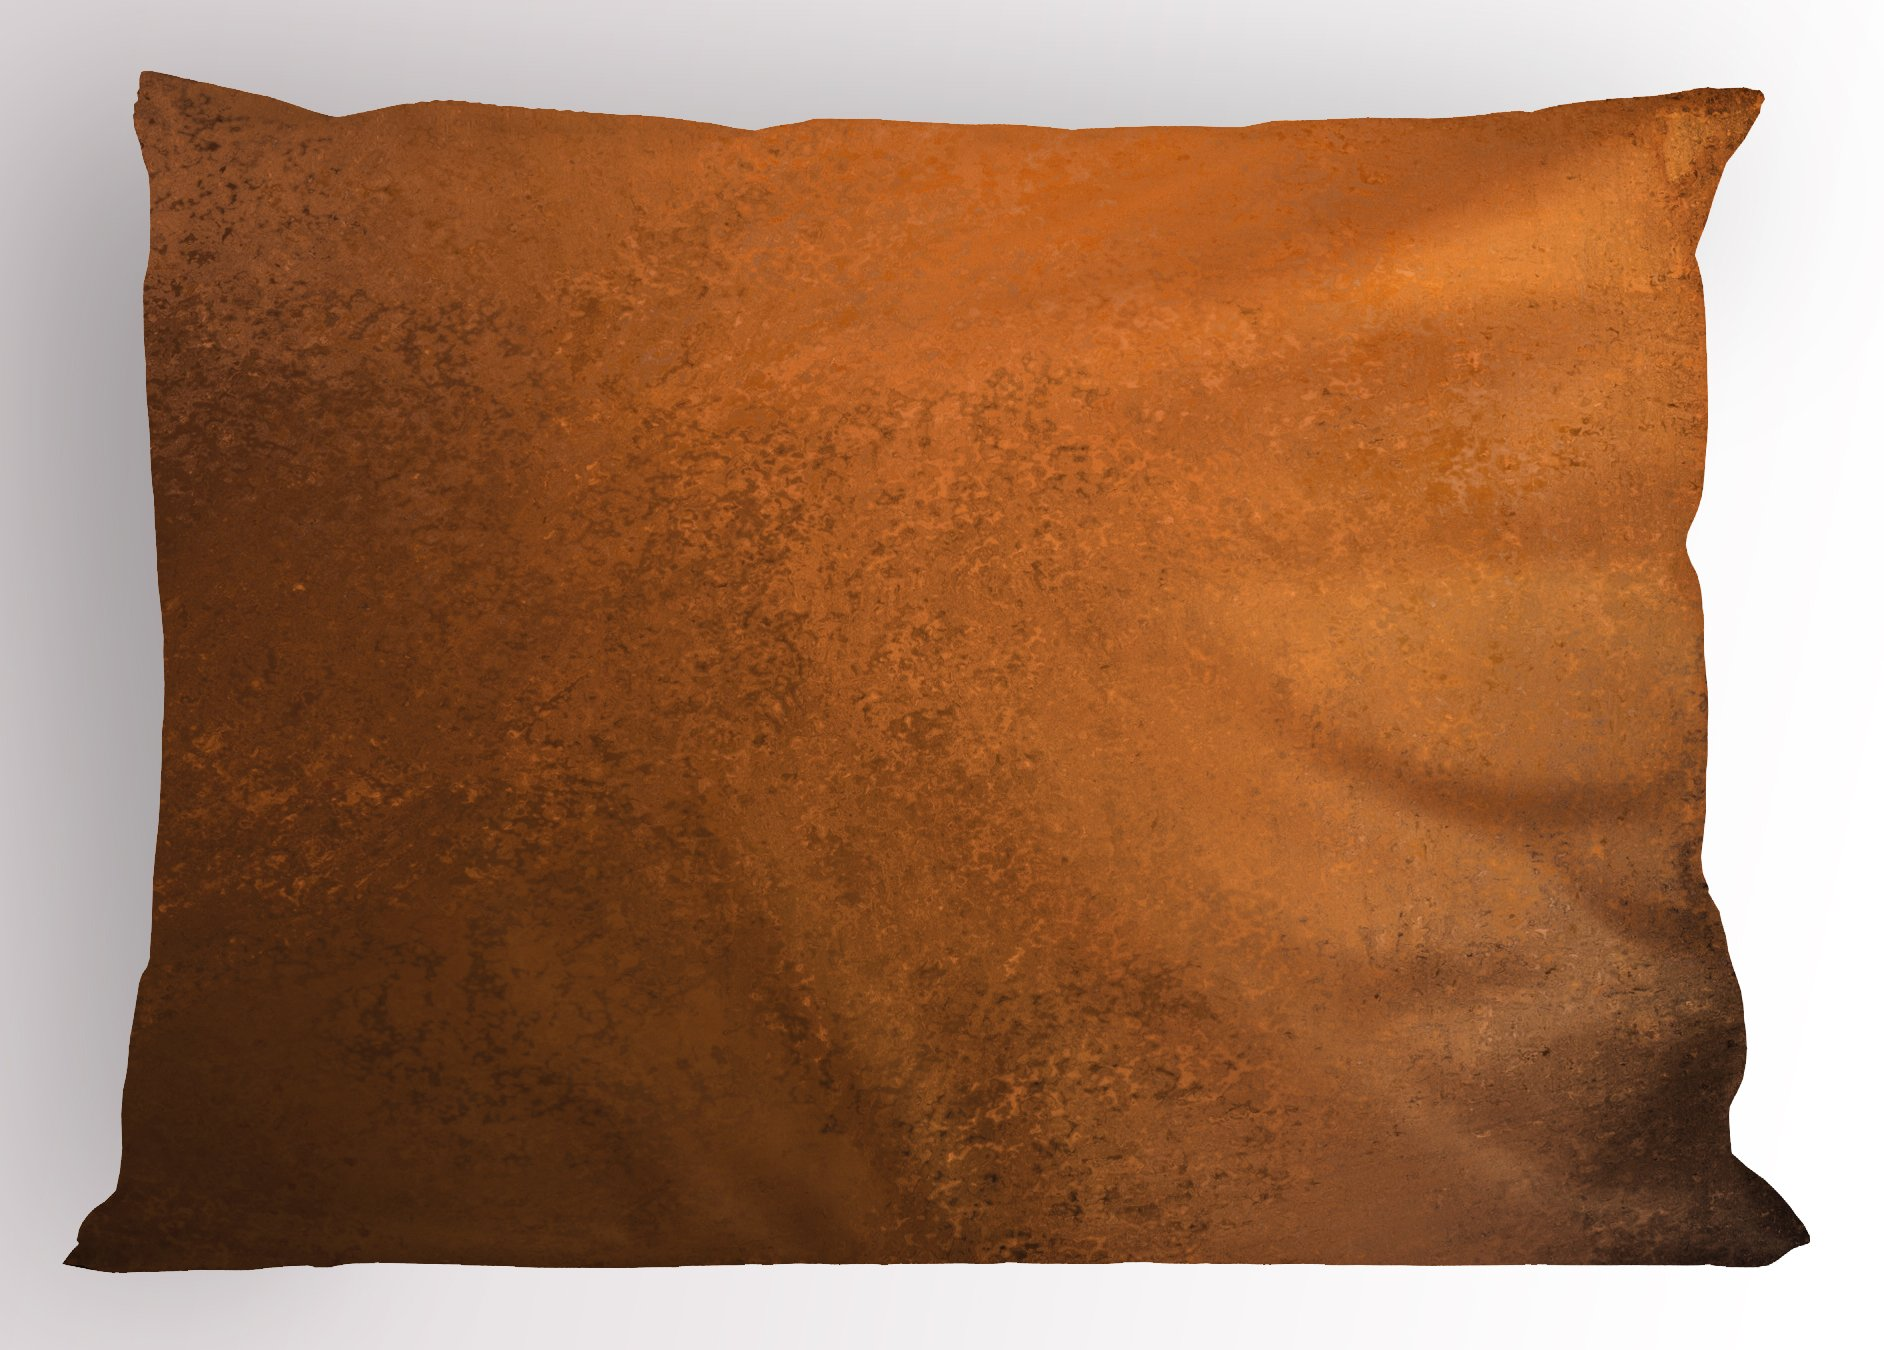 Ambesonne Abstract Pillow Sham, Grungy Looking Vintage Texture Weathered Abstract Surface Rough Wall Print, Decorative Standard Size Printed Pillowcase, 26 X 20 Inches, Ginger and Brown